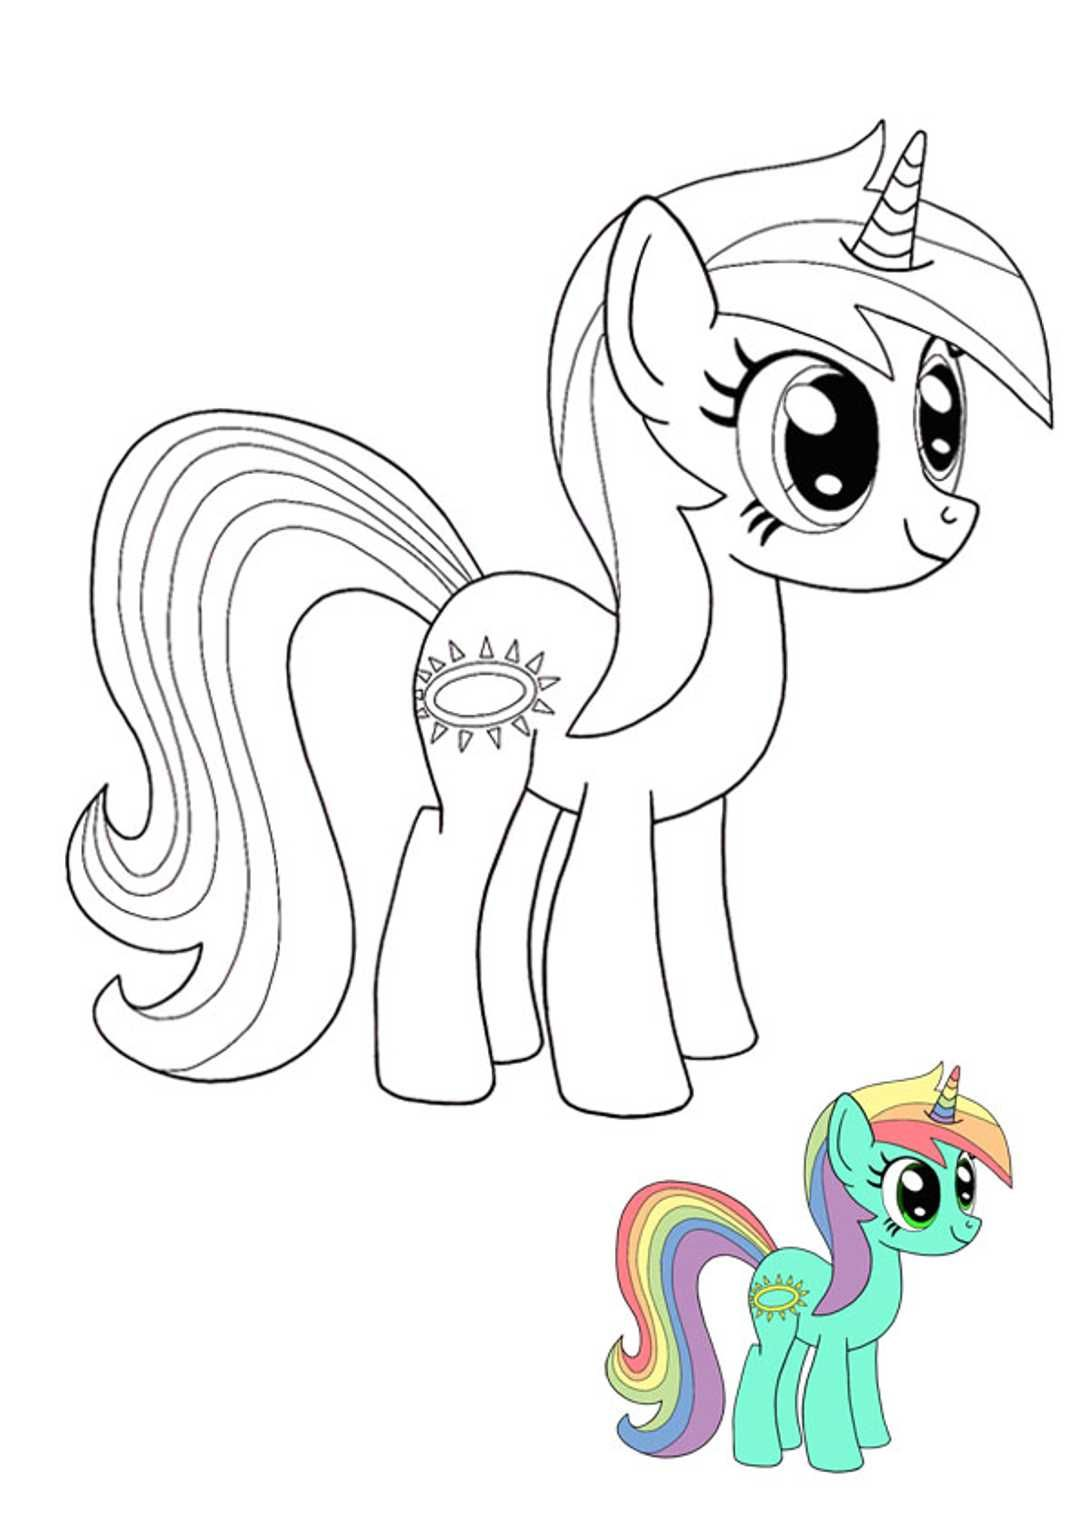 My Little Pony Unicorn Coloring Pages Unicorn Coloring Pages My Little Pony Unicorn My Little Pony Coloring [ 1528 x 1080 Pixel ]